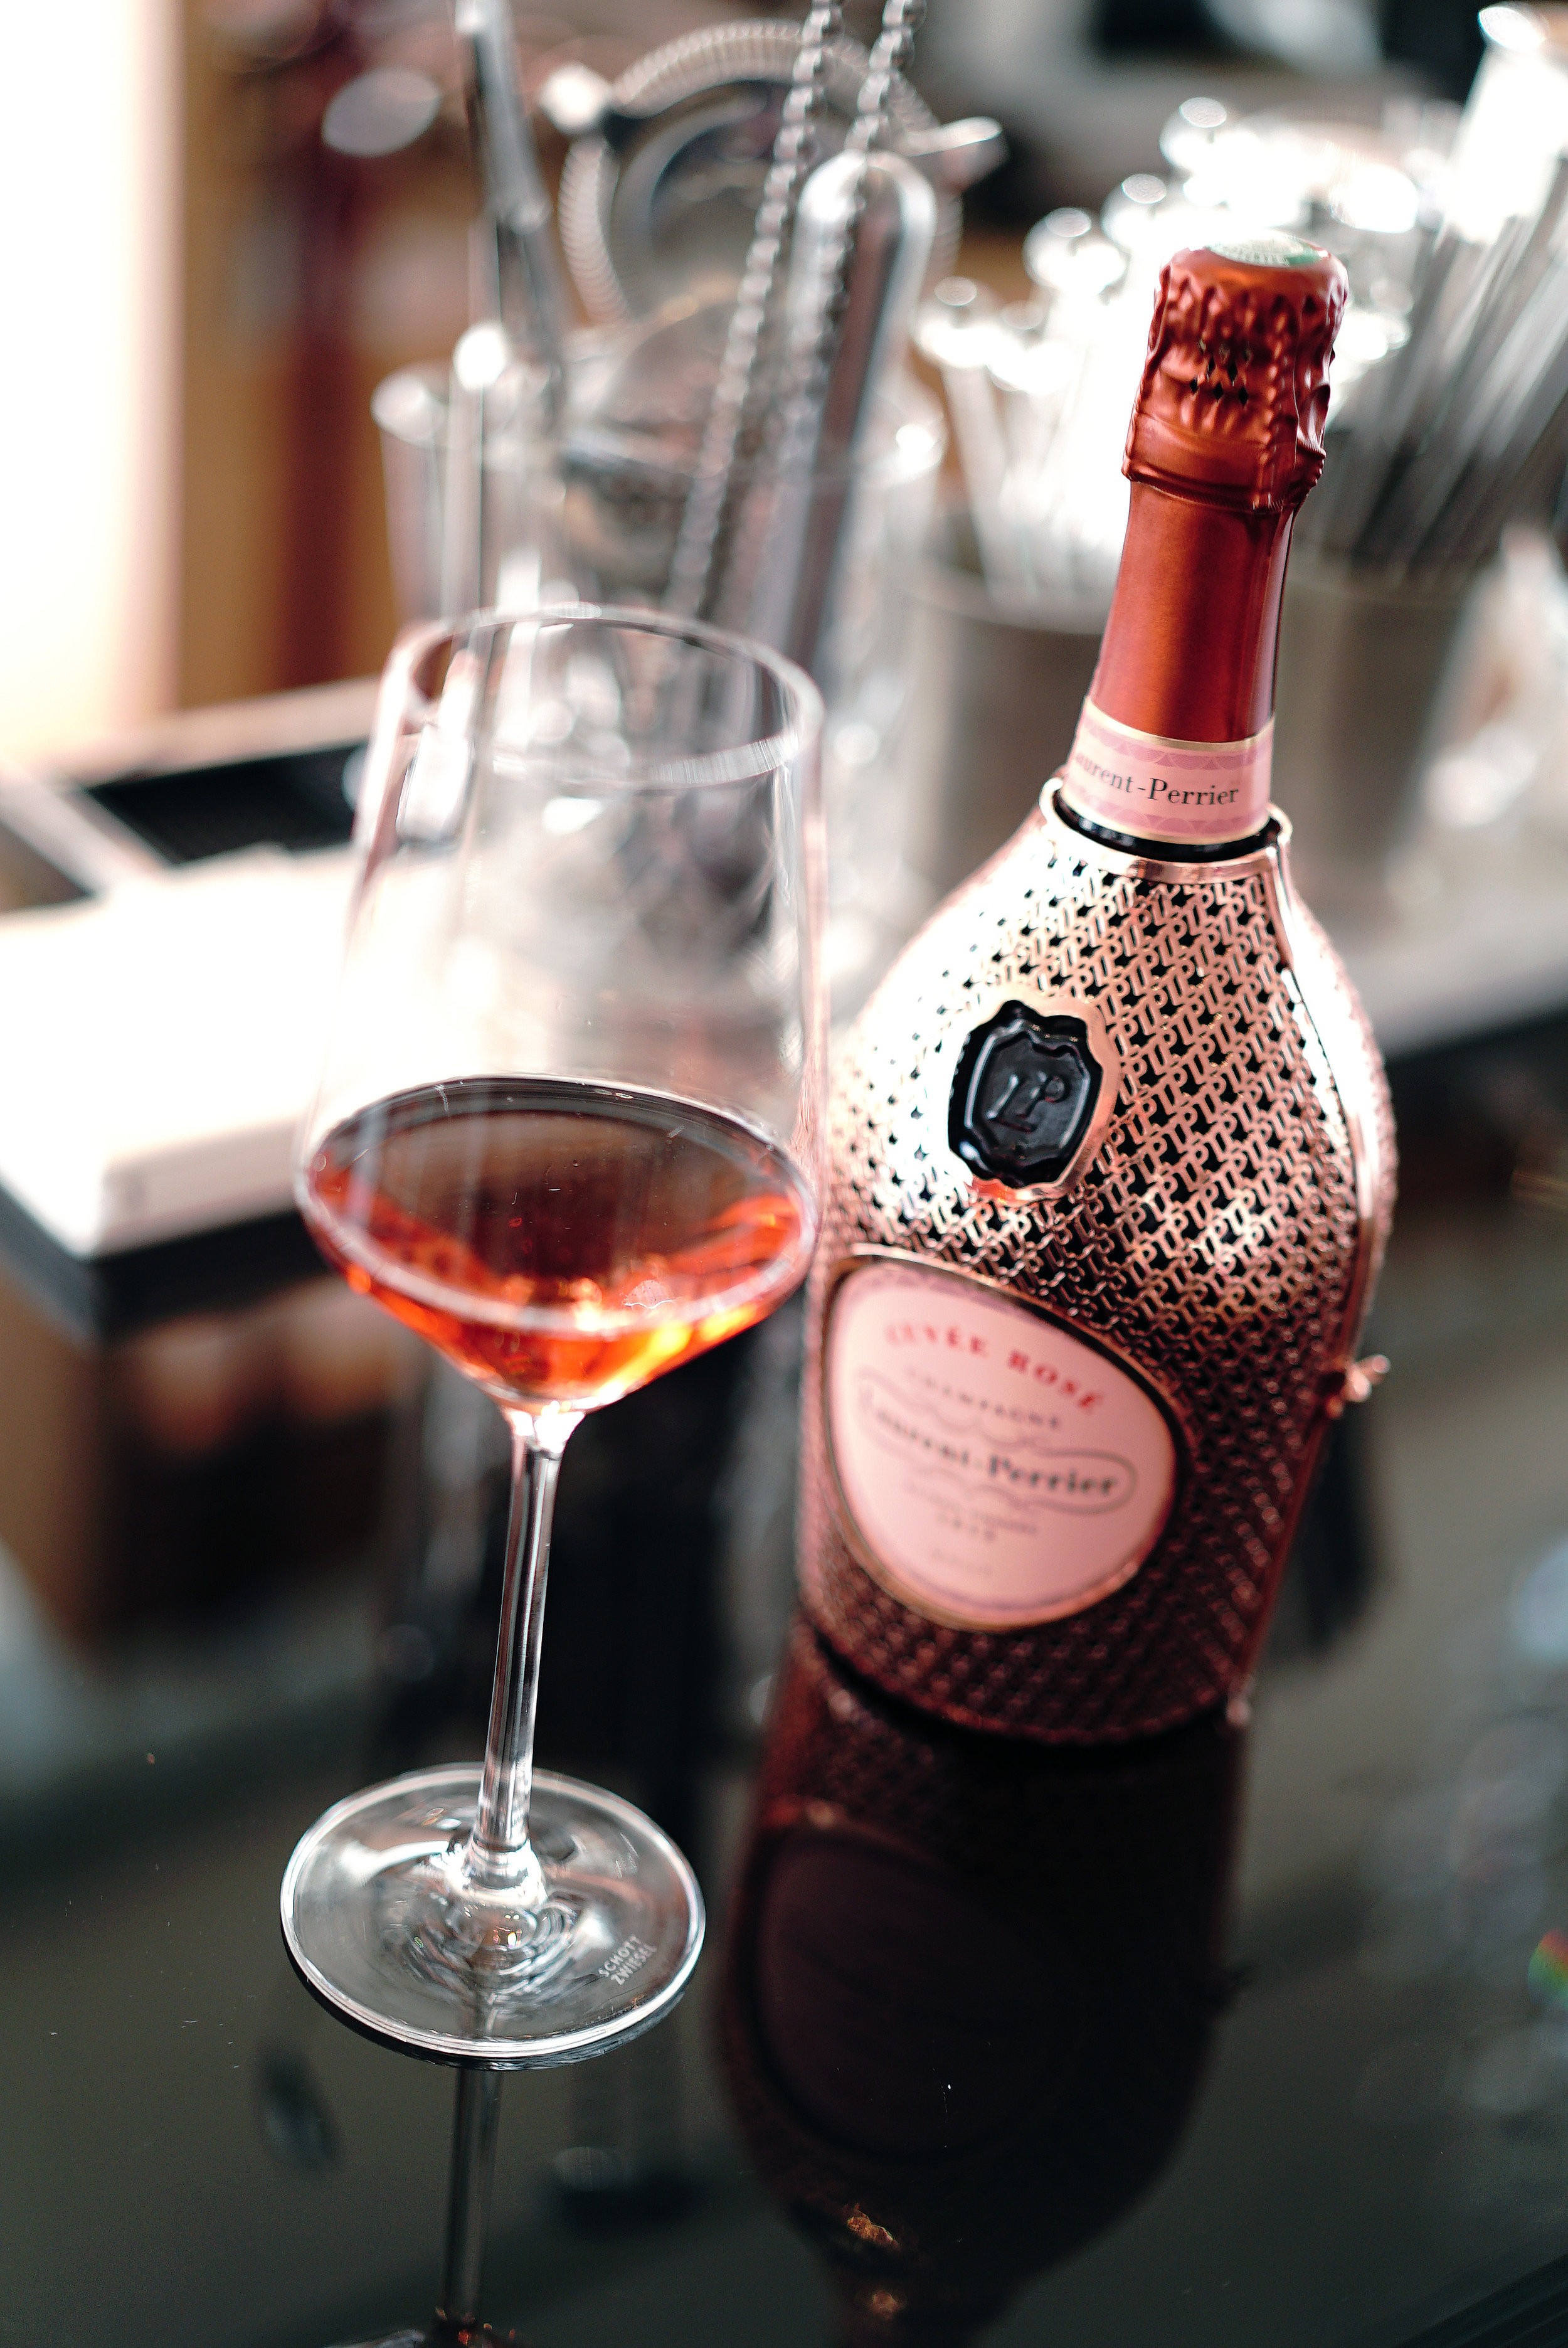 Laurent Perrier Cuvee Rose P 2.jpg